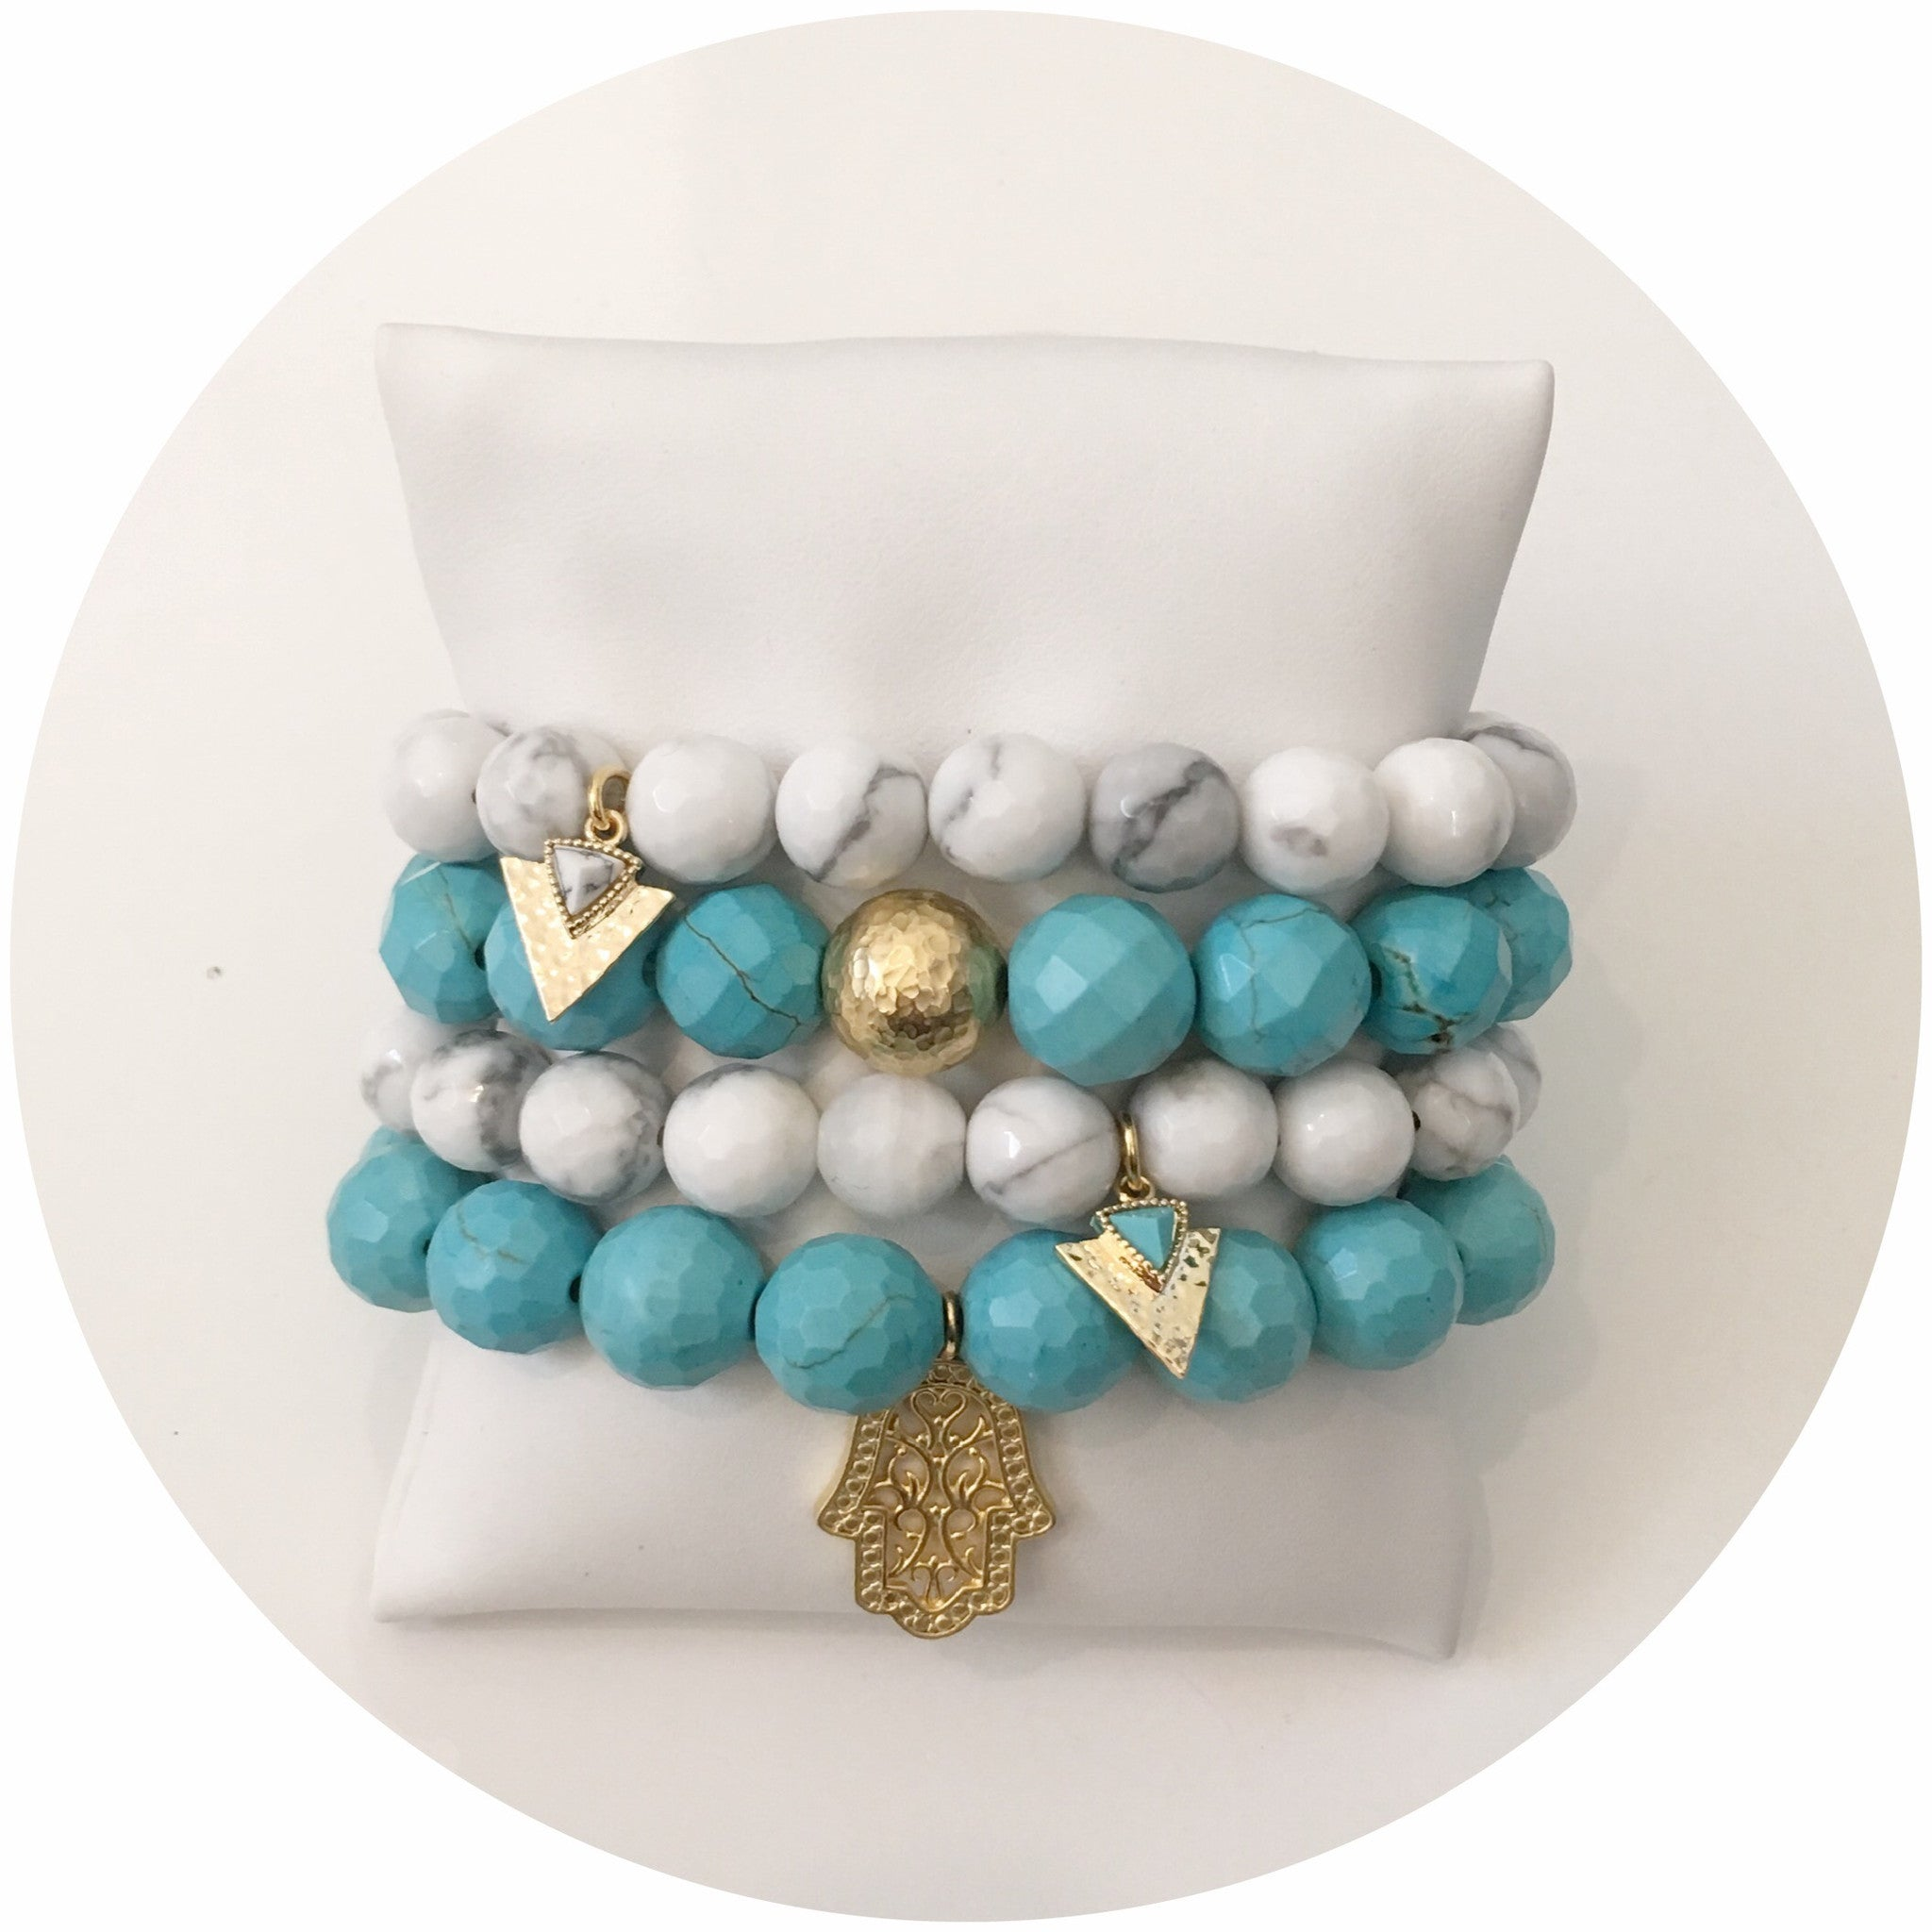 Turquoise Magnesite with Hammered Gold Accent - Oriana Lamarca LLC